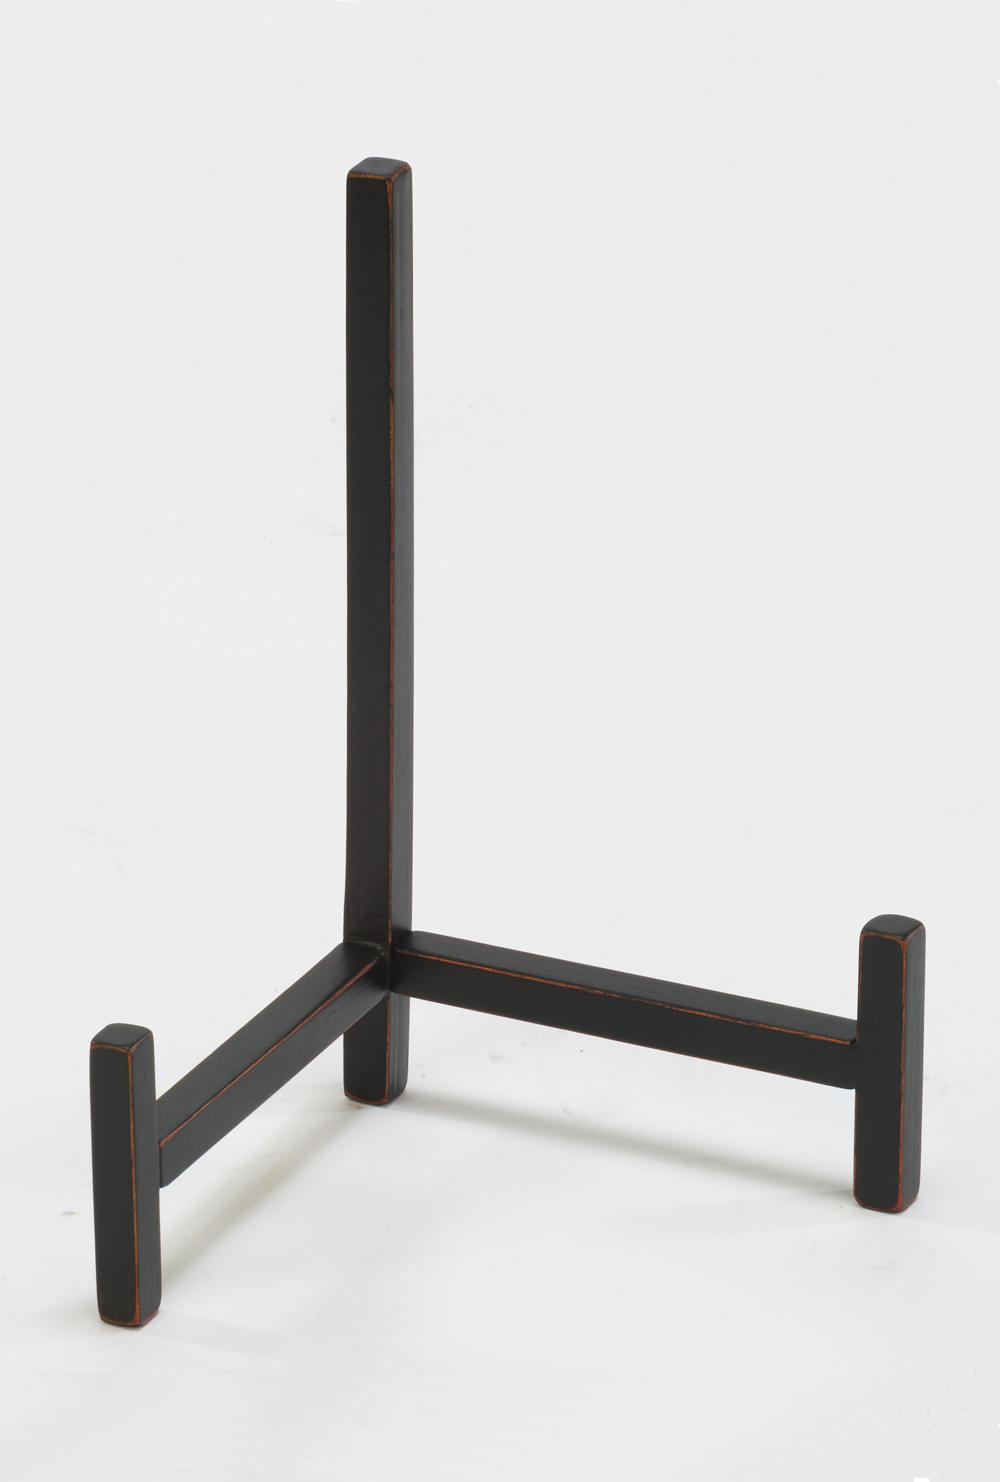 3-Leg Wooden Easel - Black (Easels (Tabletop))